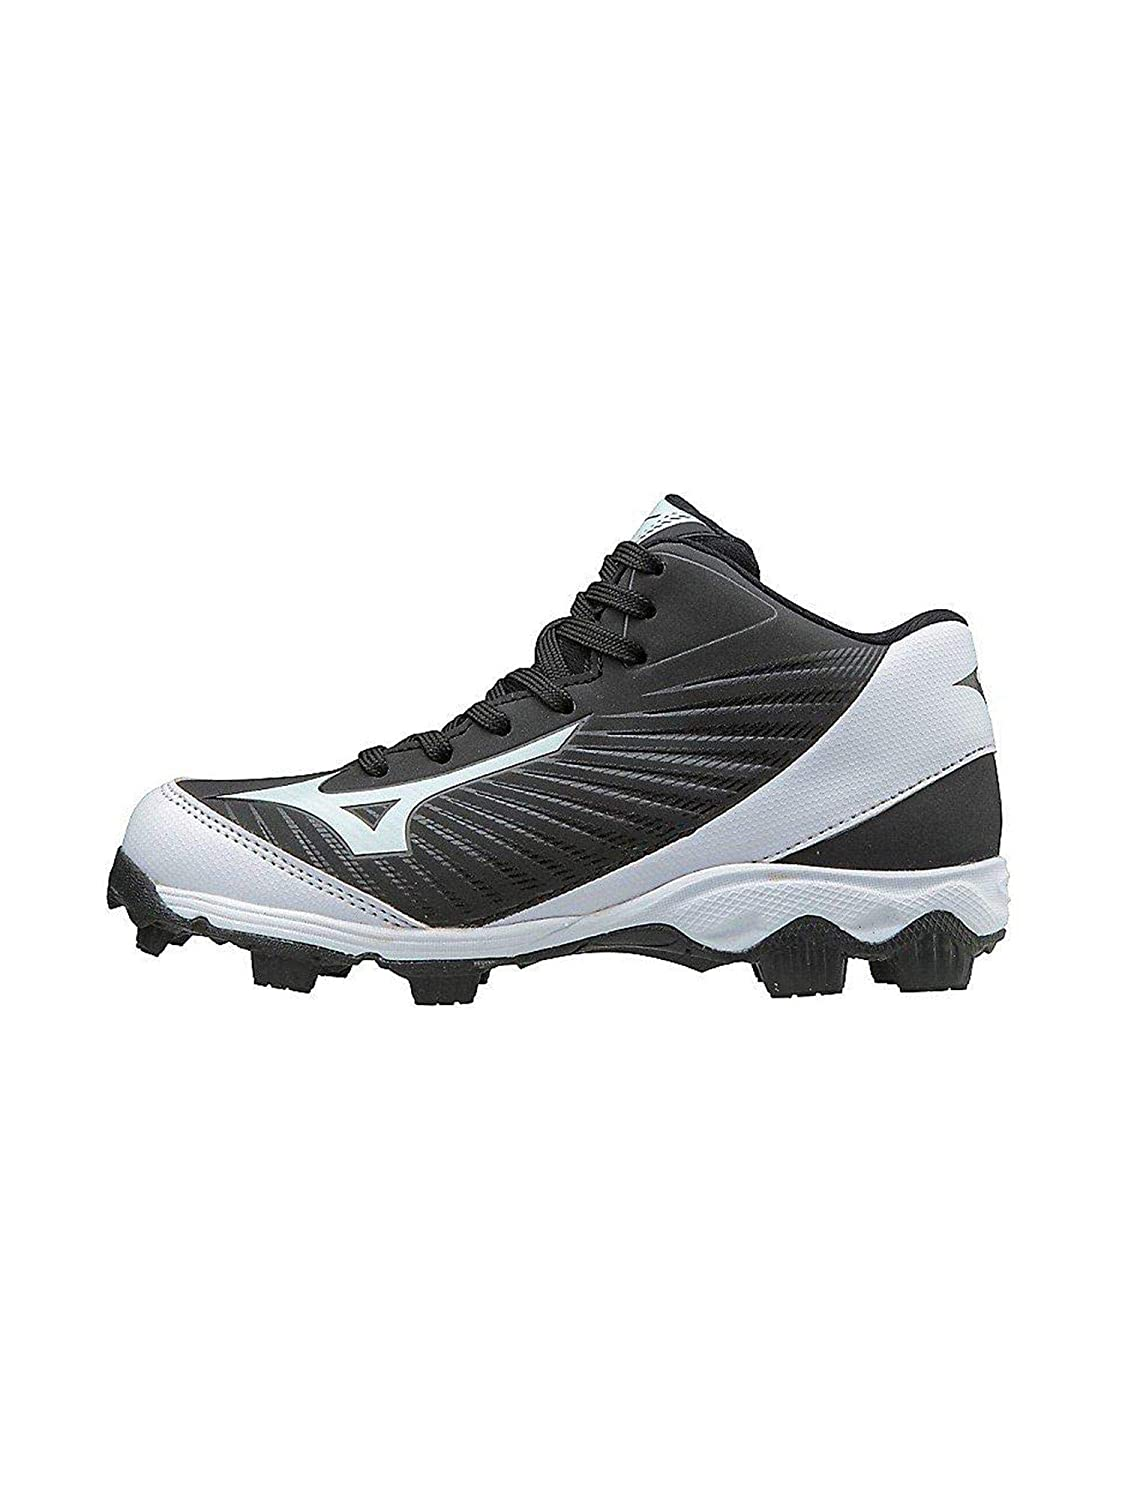 Mizuno (MIZD9) Kids' 9-Spike Advanced Franchise 9 Molded Youth Baseball Cleat-Mid Shoe